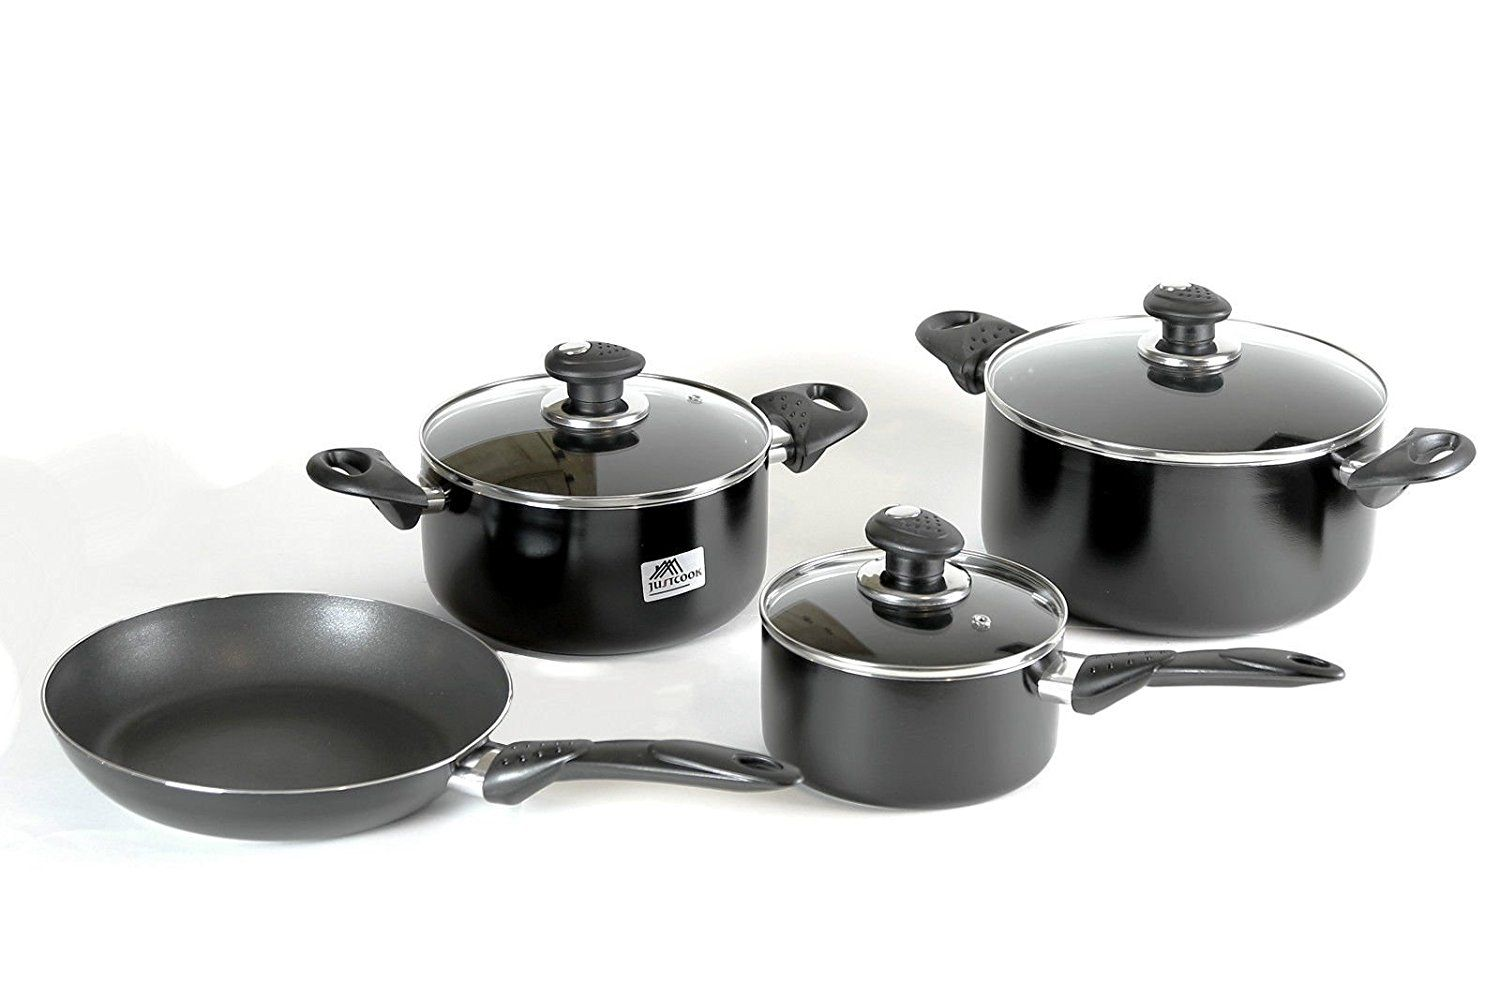 Royalford Cookware Set 7 Pieces Non Stick Durable Interior Heat Resistant 008 3 Remarkable P Cookware Set Cookware Set Nonstick Cookware Set Stainless Steel Non stick stainless steel cookware set